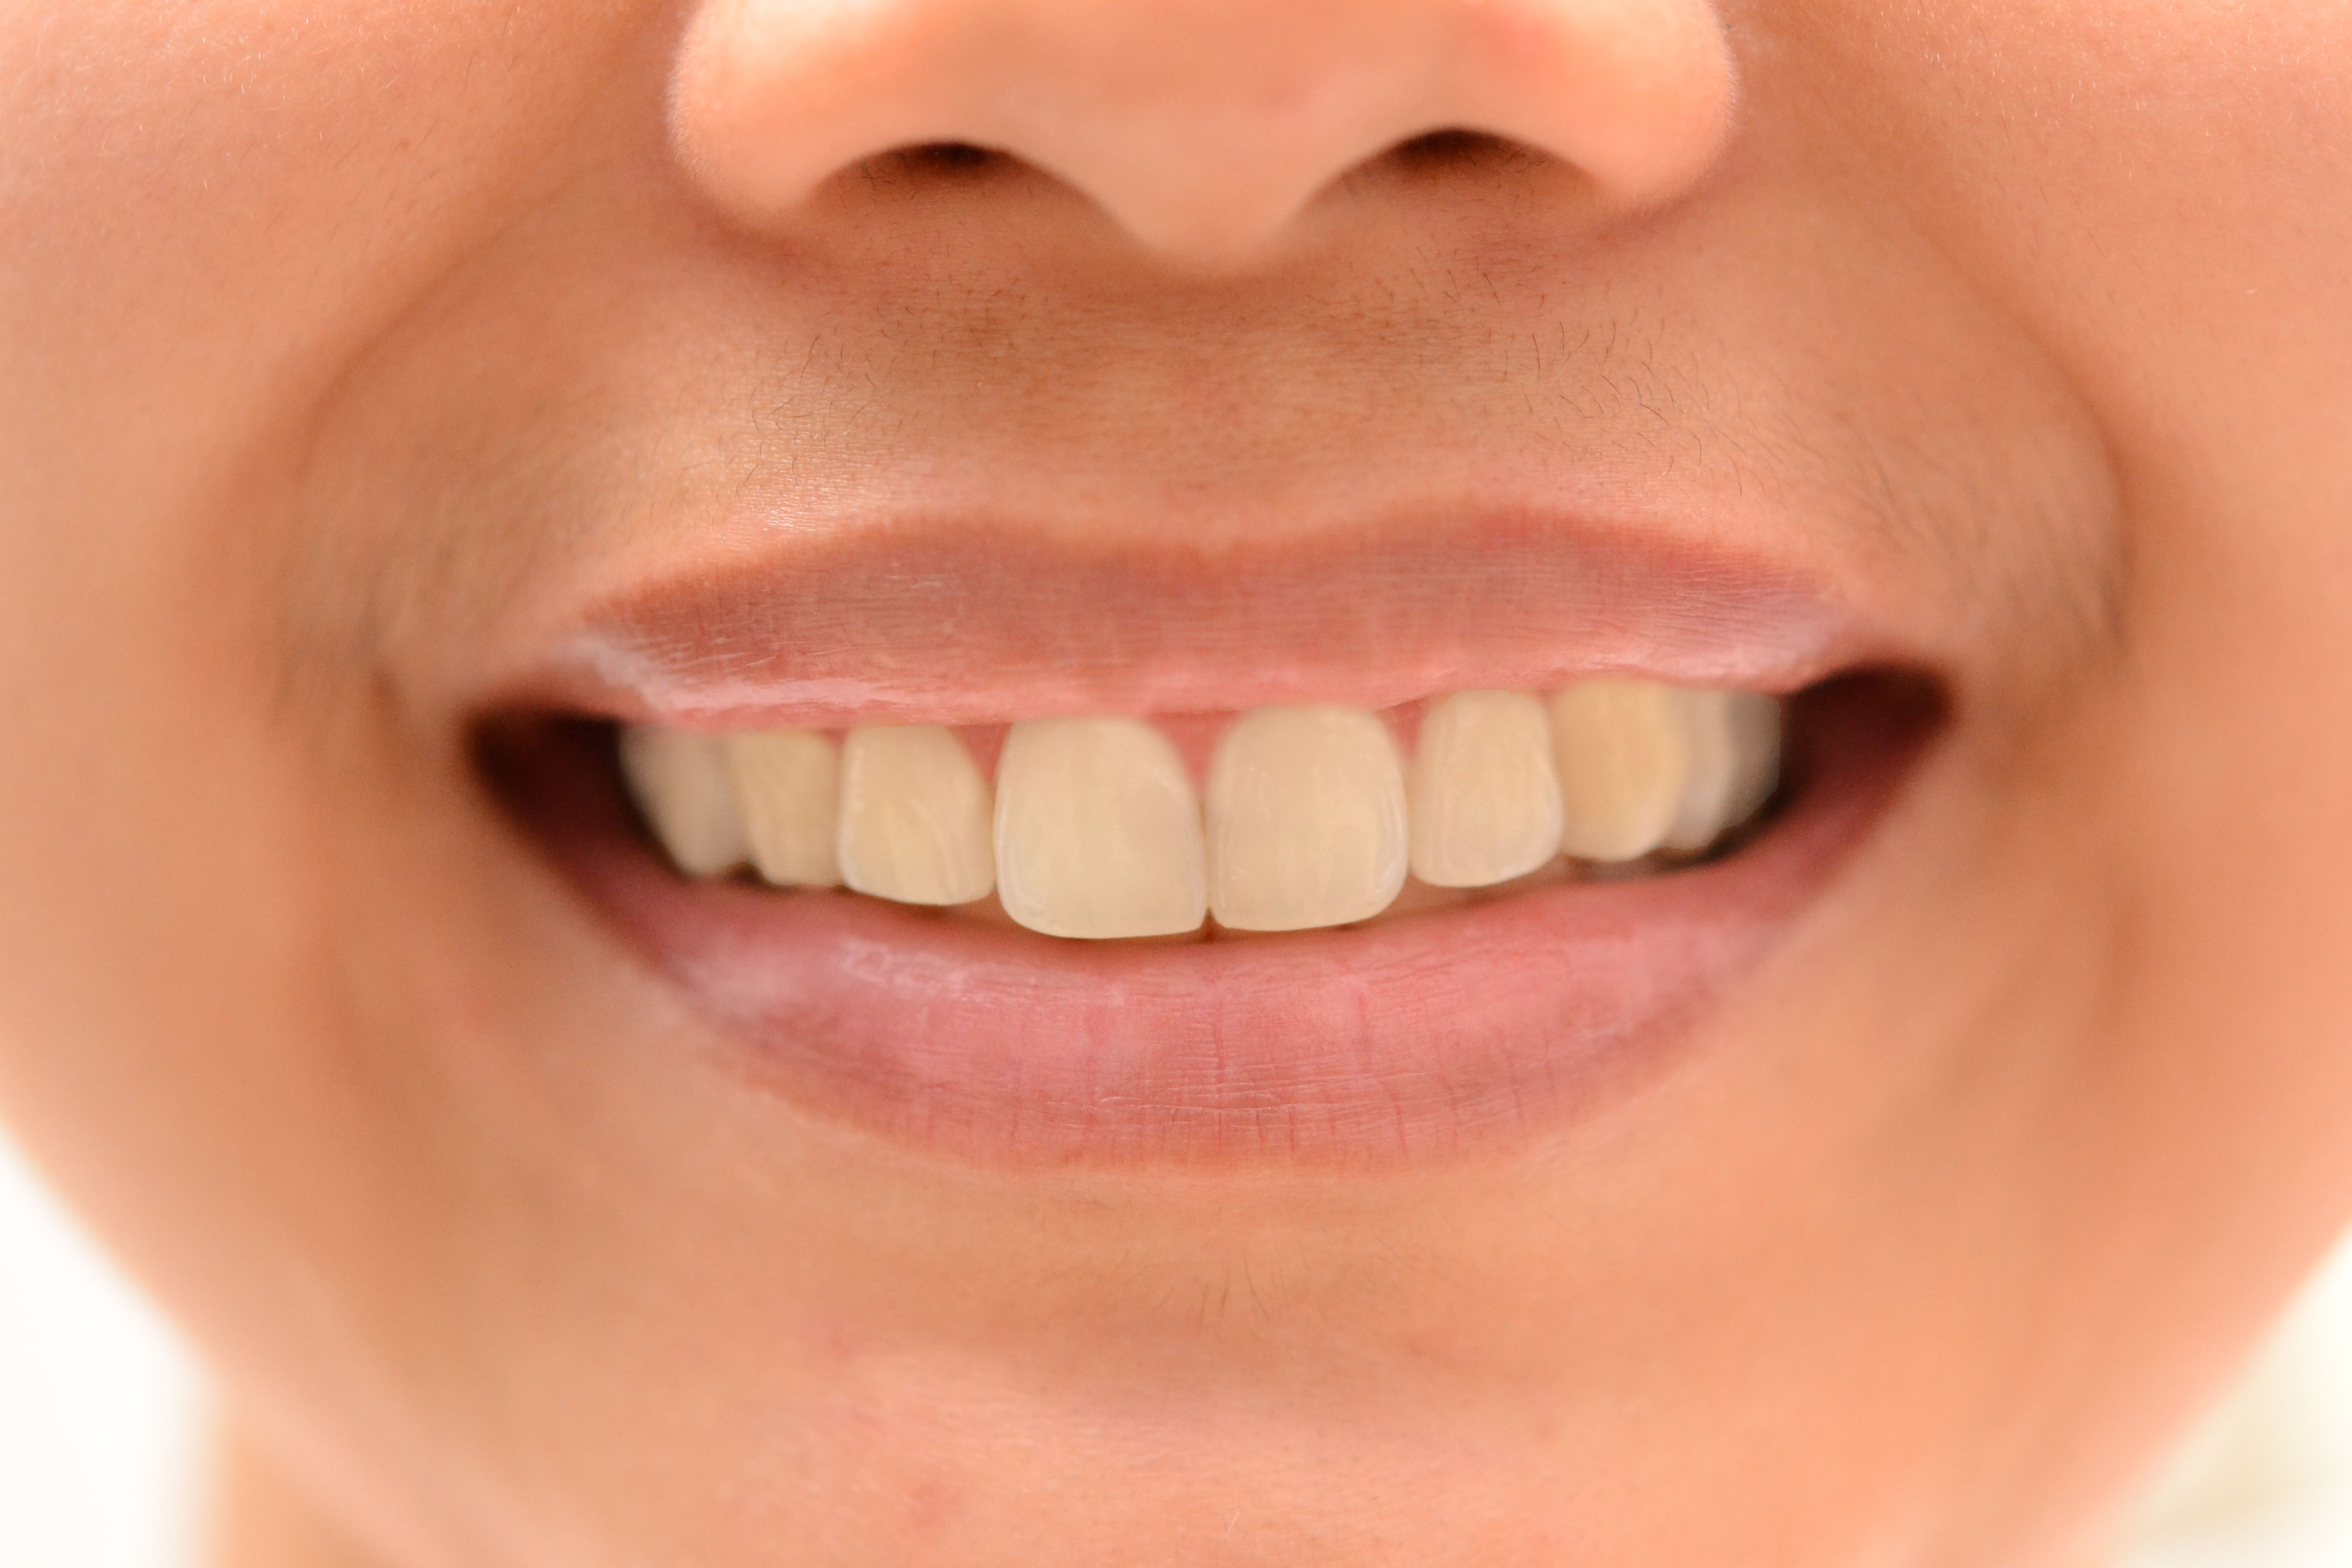 The Shape Of Your Teeth Can Reveal A Lot About Your